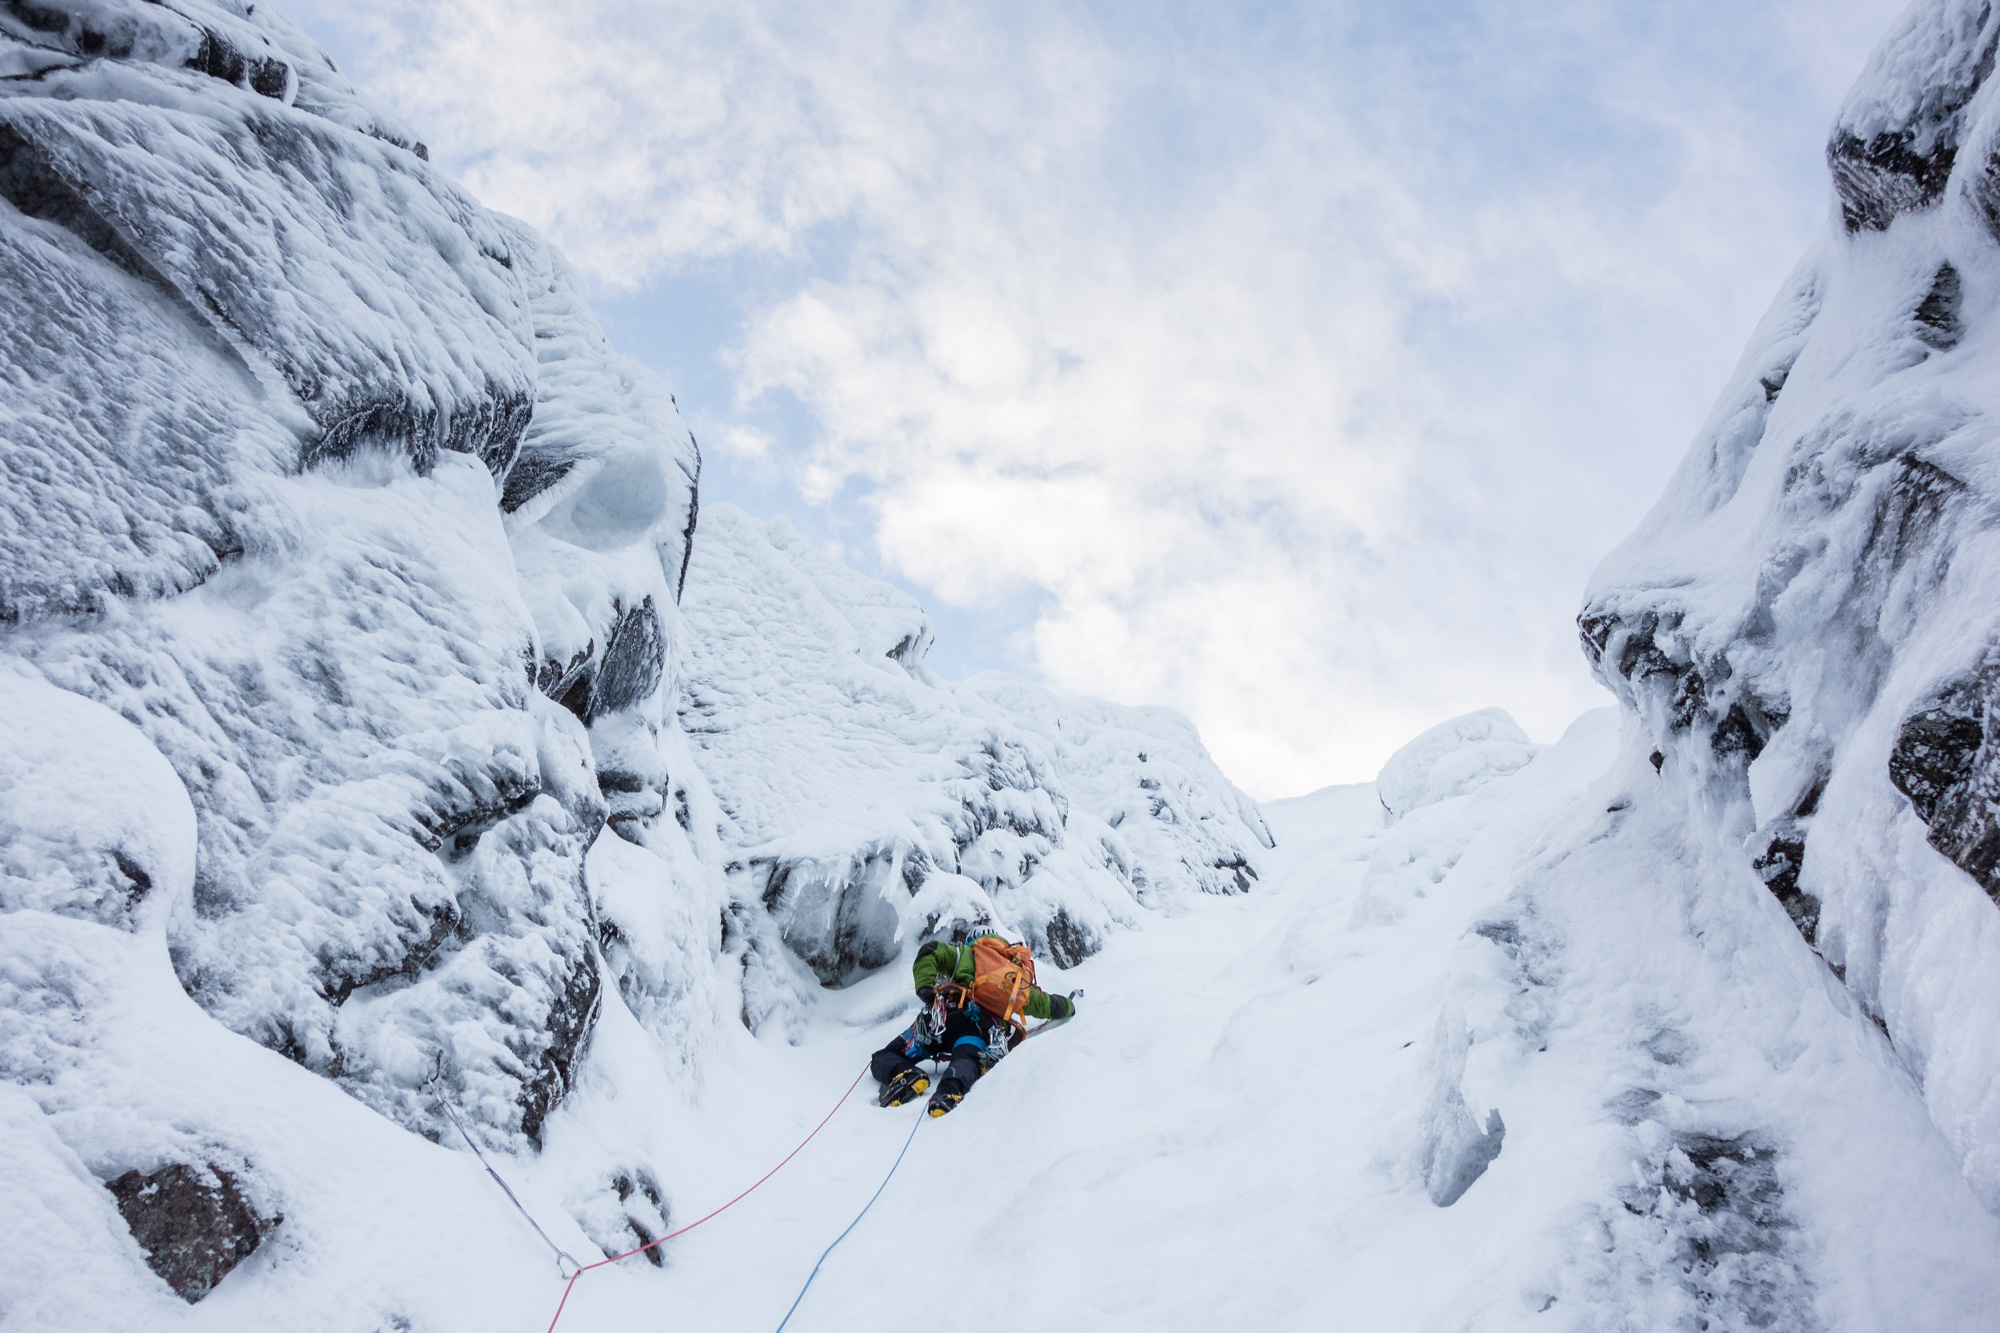 Poorly protected, steep and buried in loose snow - it must be the top of a Lochnagar gully! A cool lead by Andy of a serious pitch